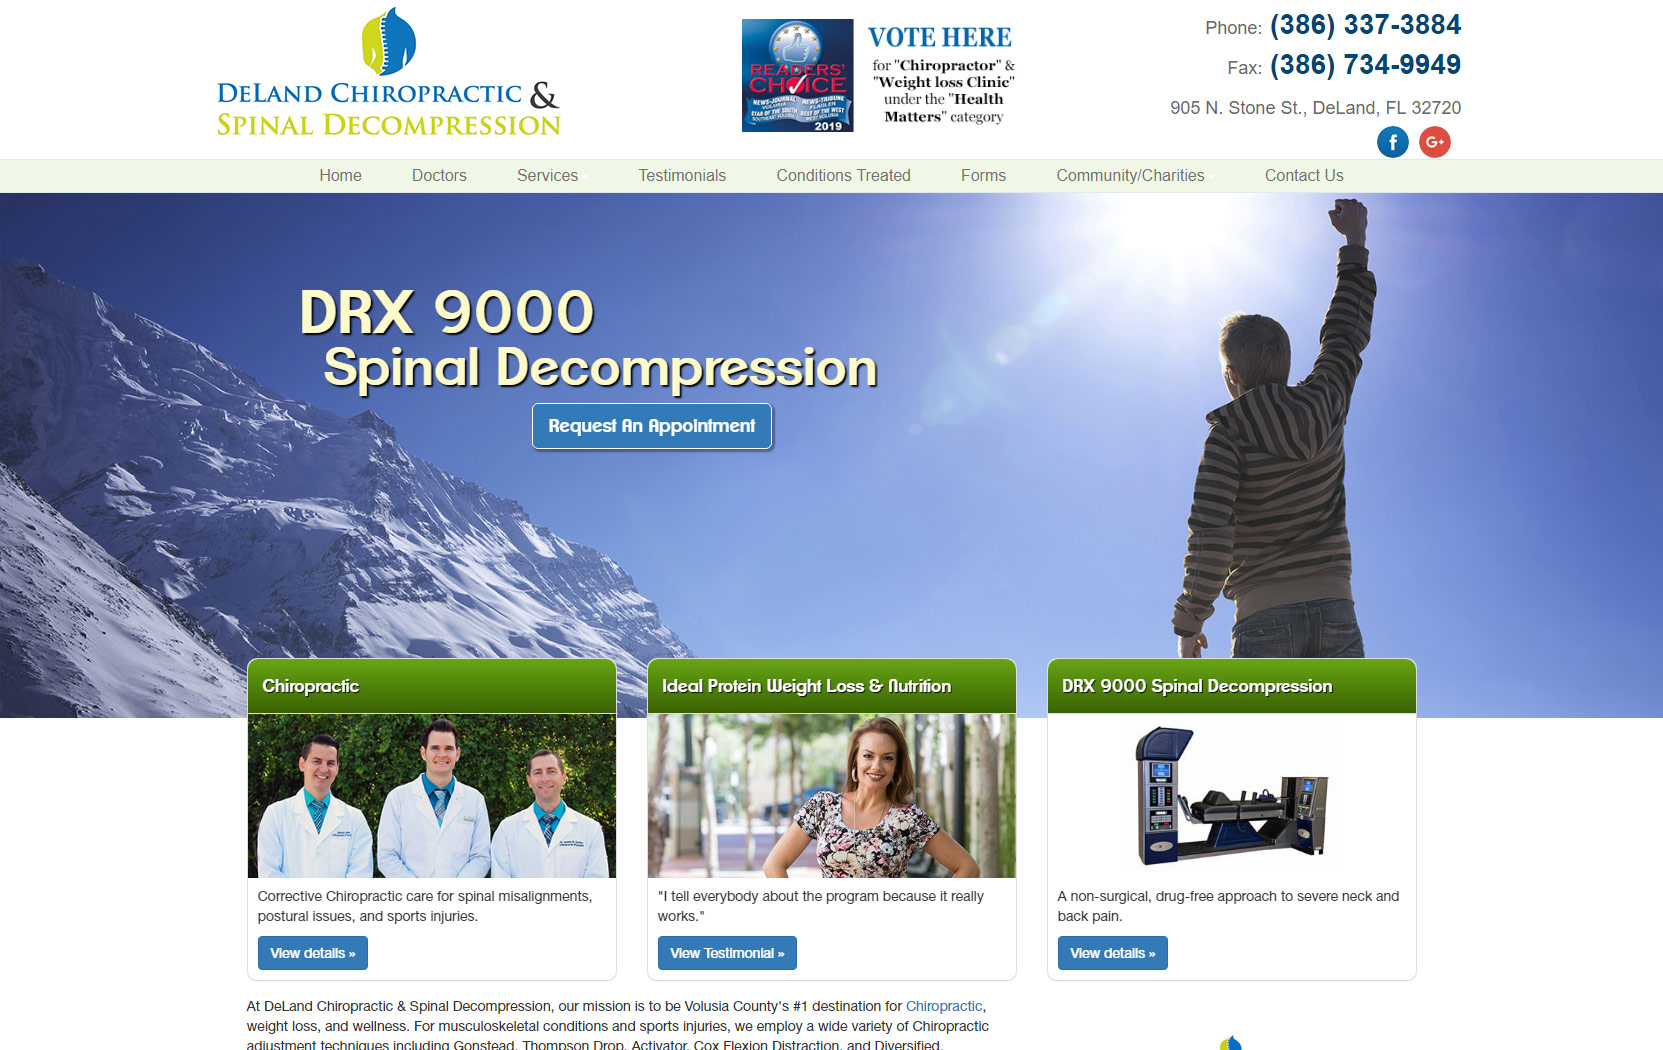 DeLand Chiropractic & Spinal Decompression